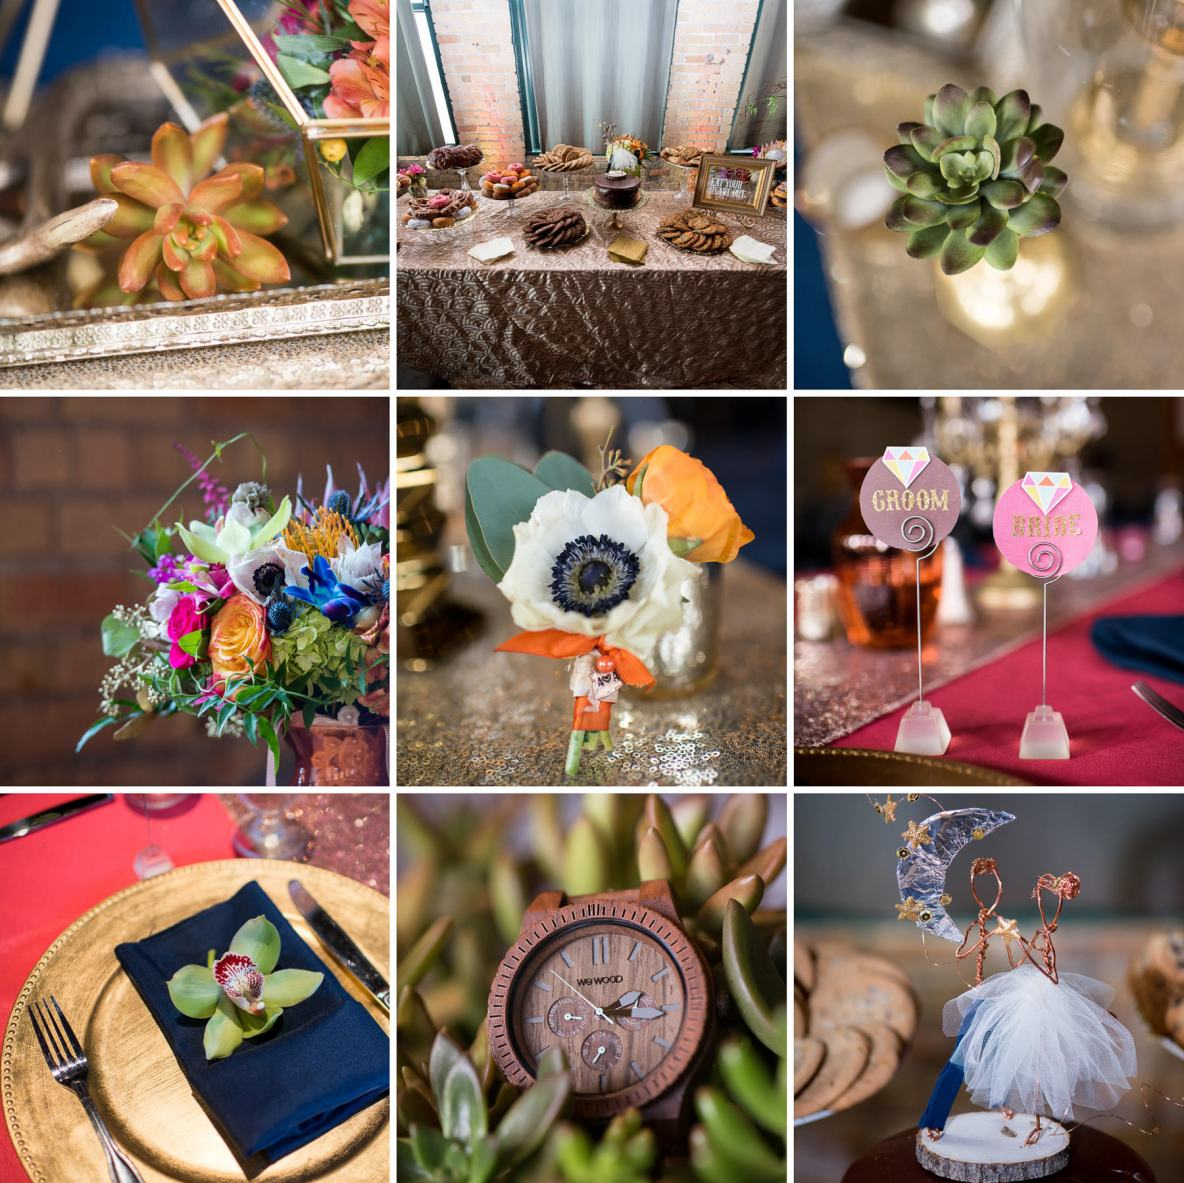 Collage of various wedding flowers, gifts and pastries.